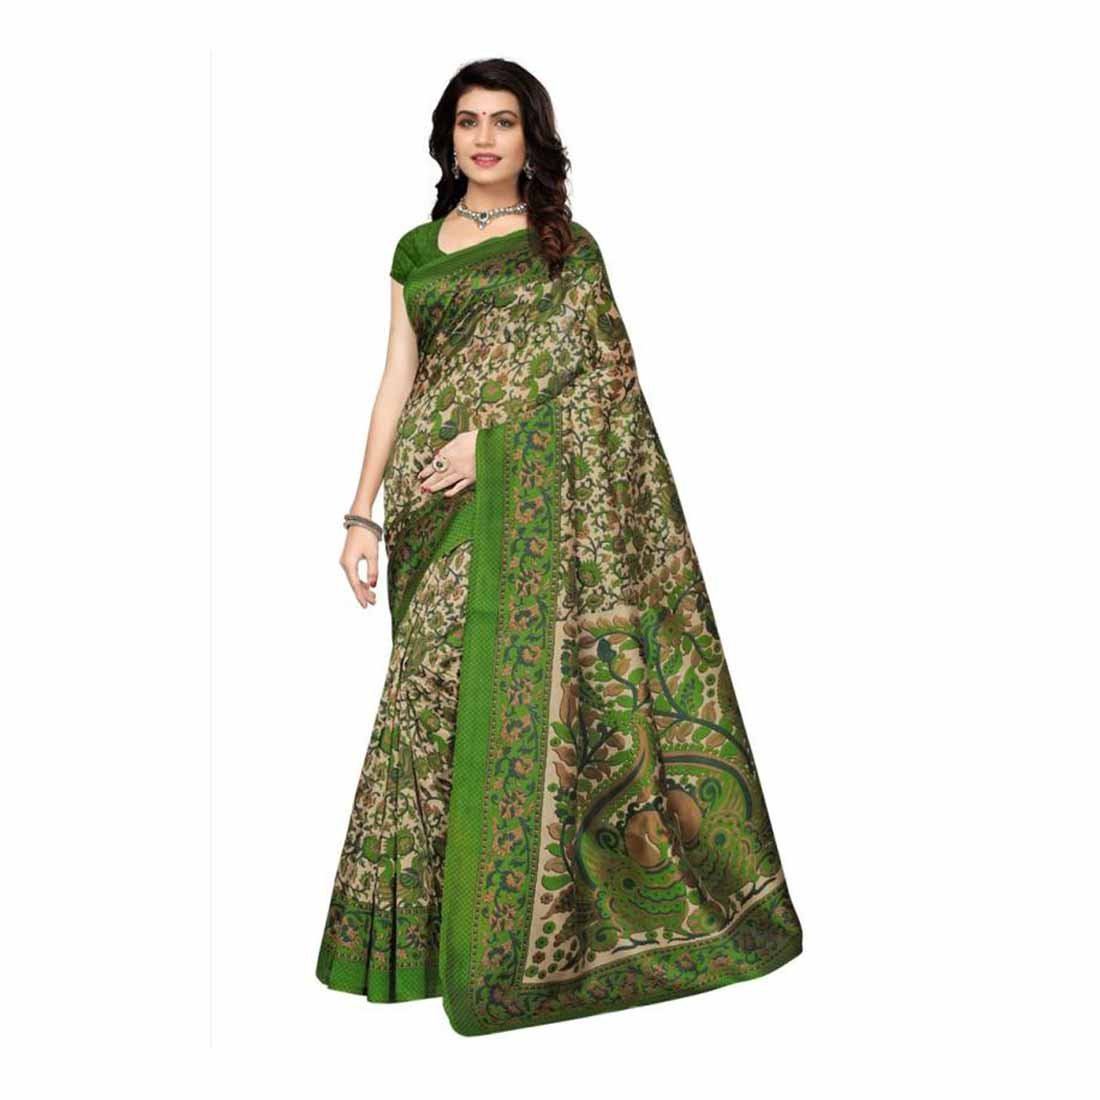 Indian Handicrfats Export Printed Kalamkari Art Silk Saree (Green) FKSAR-0138